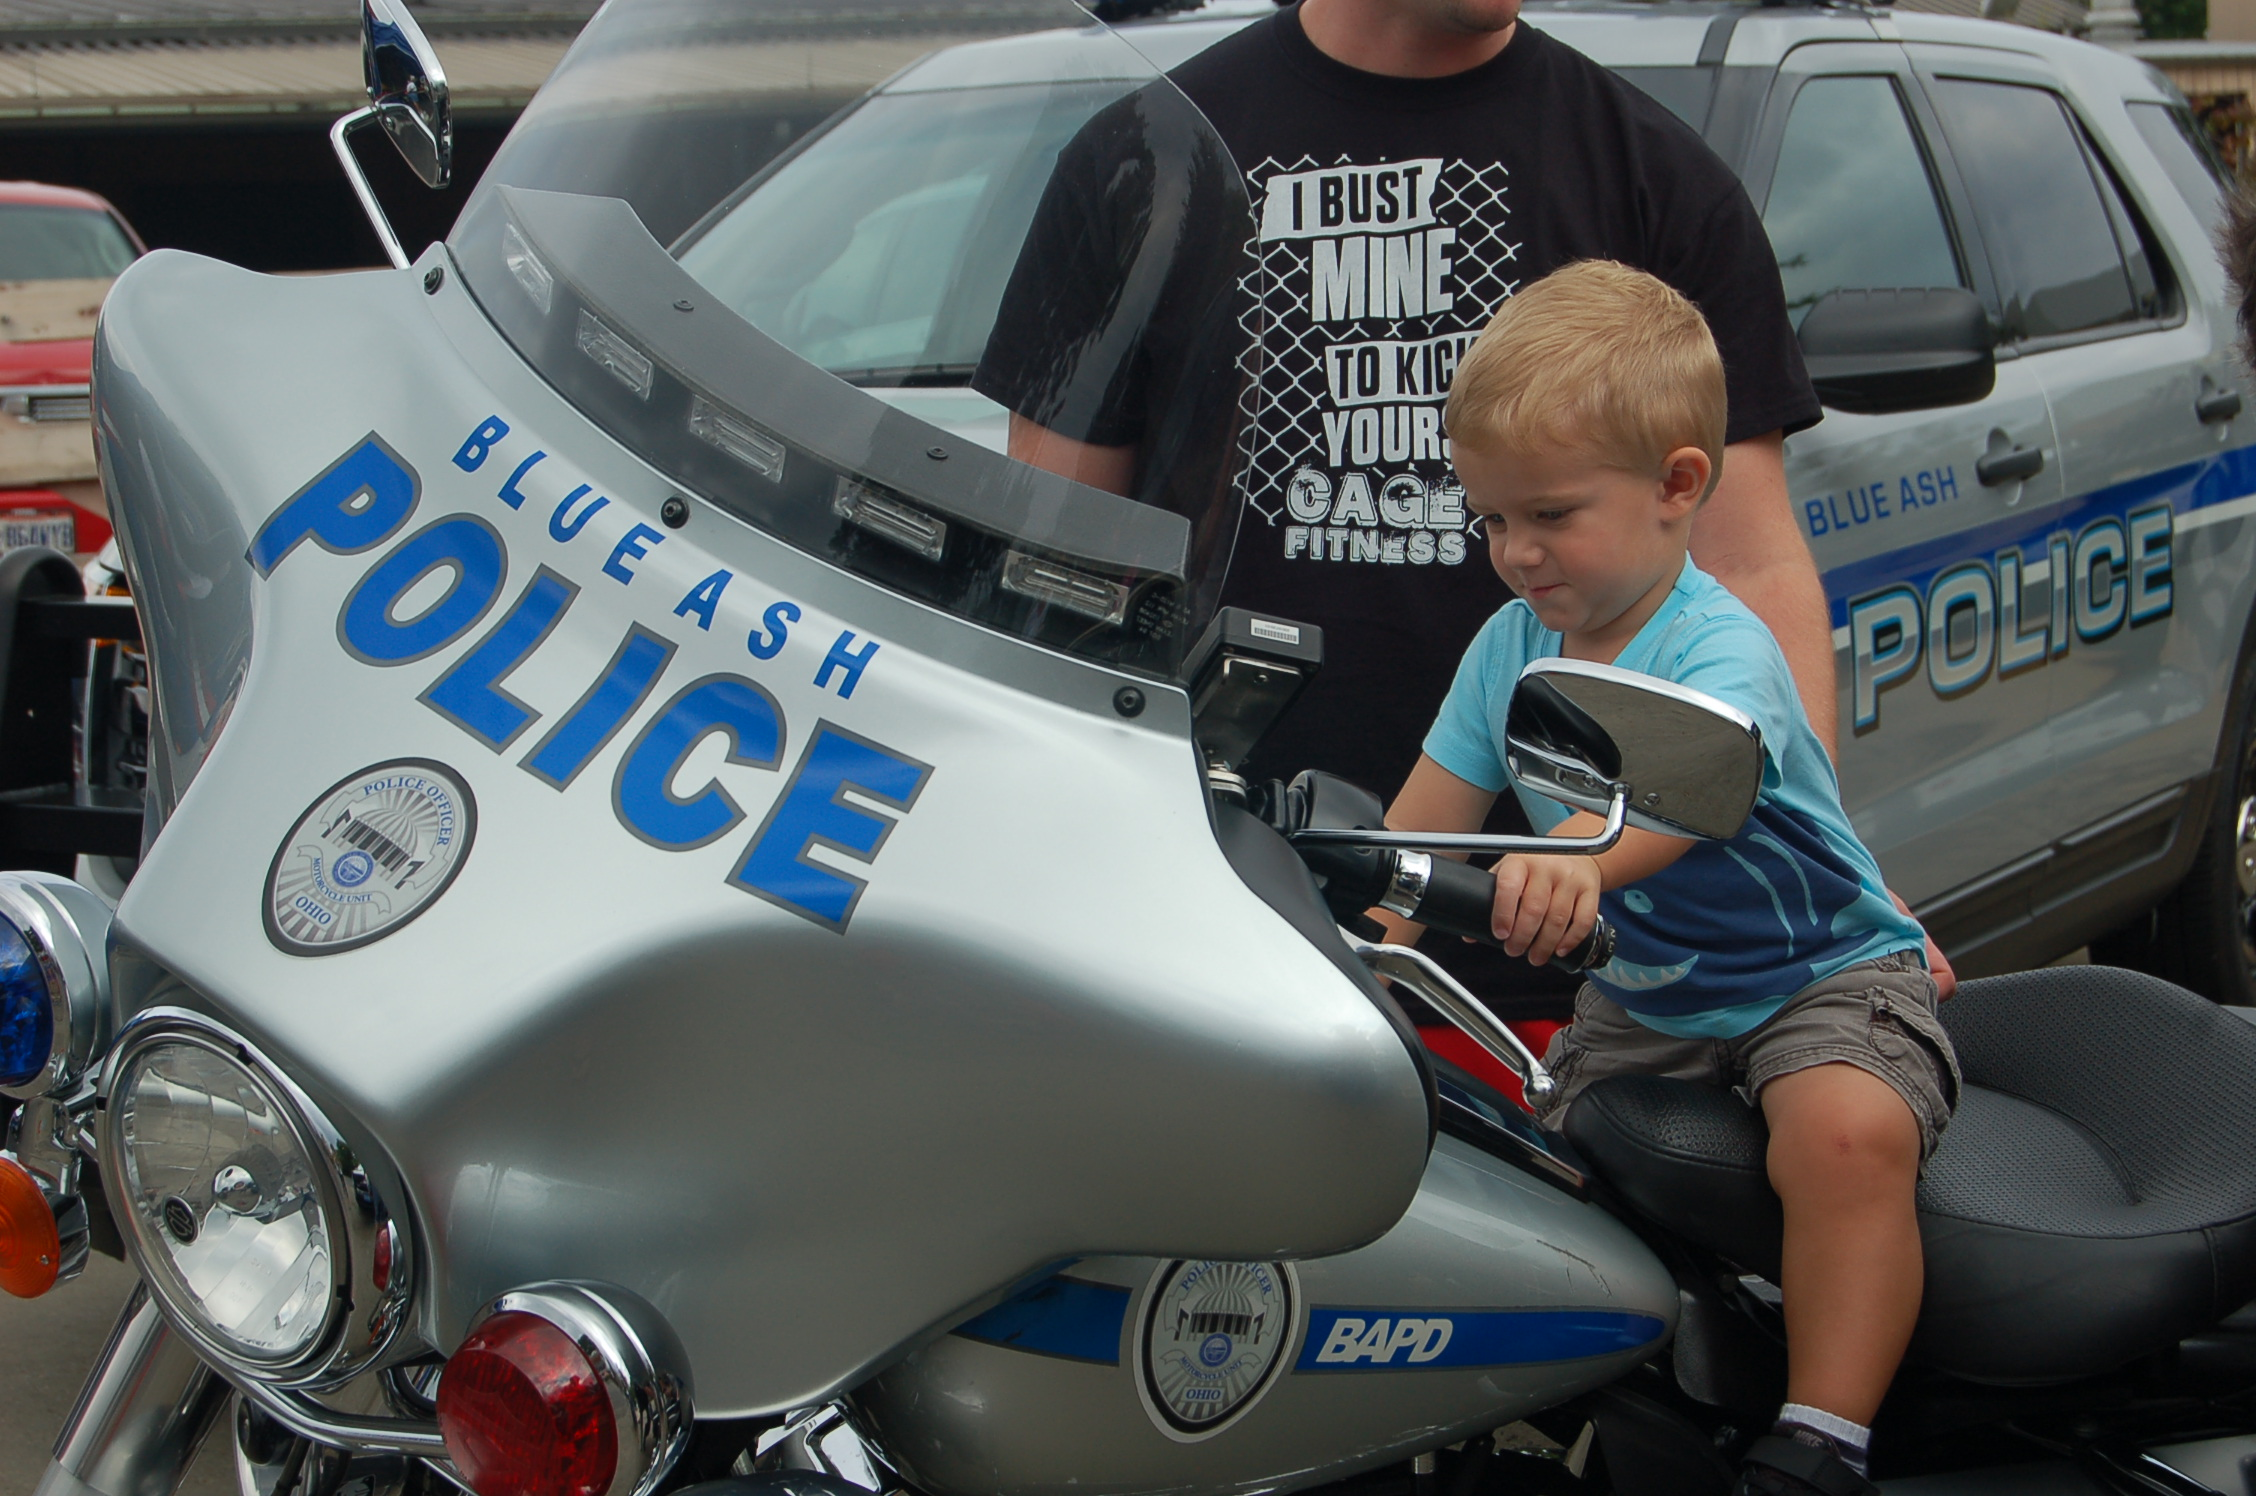 boy on a Blue Ash Police motorcycle